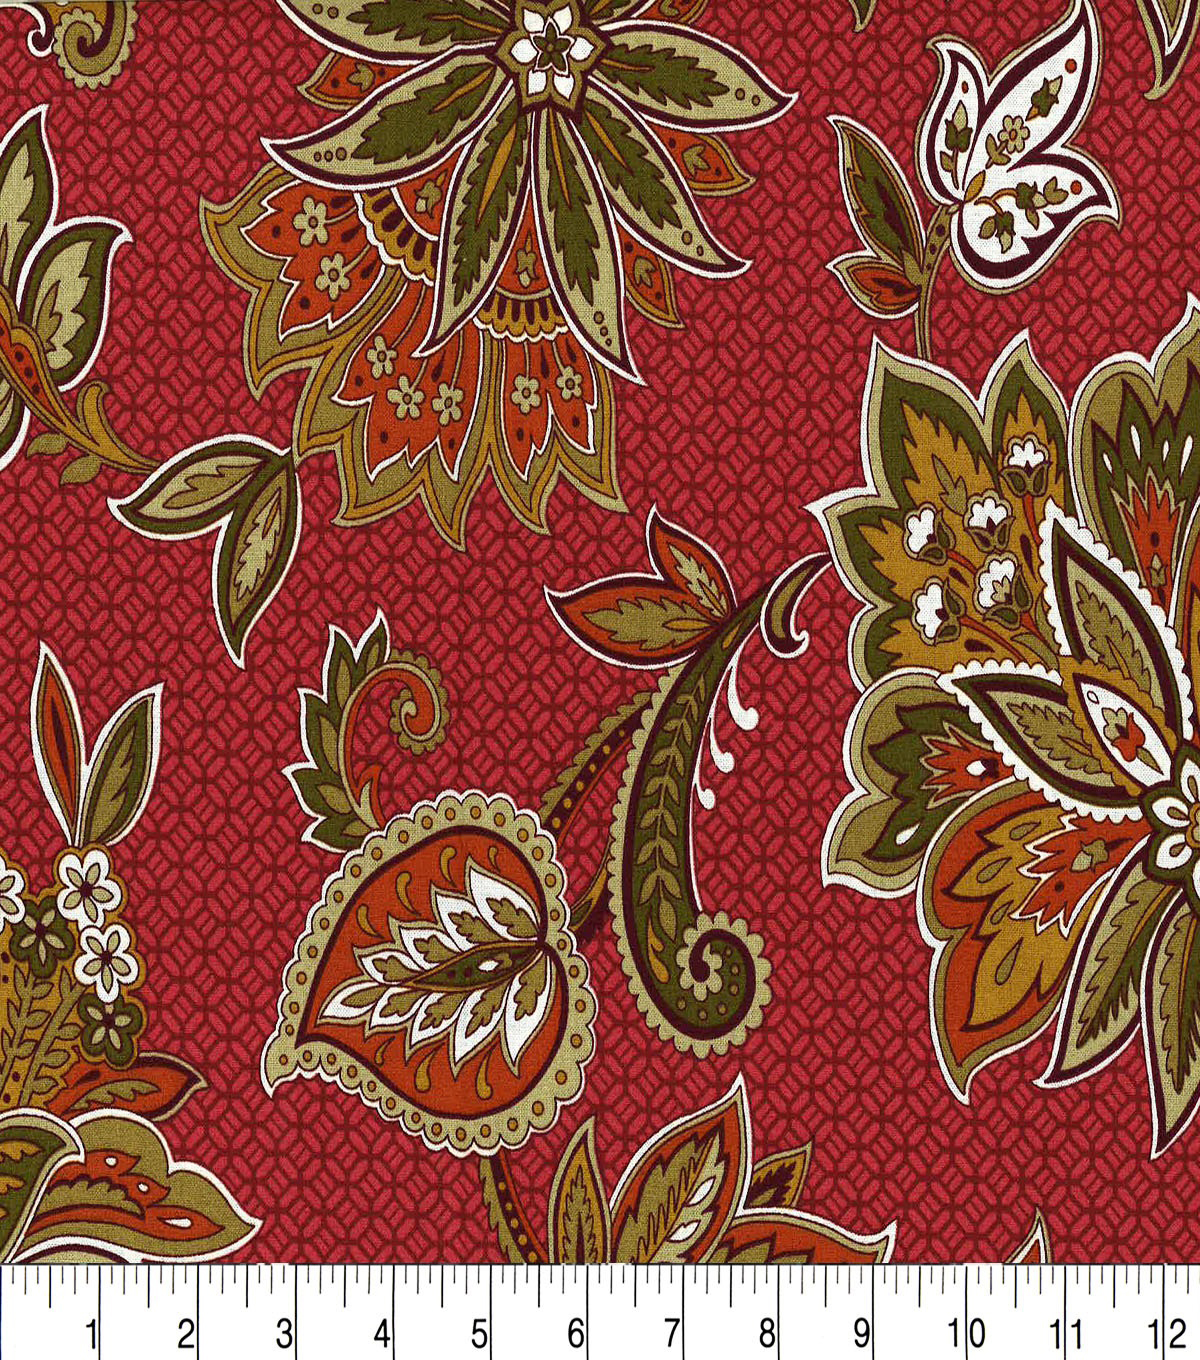 Keepsake Calico Cotton Fabric-Metabelle Garnet